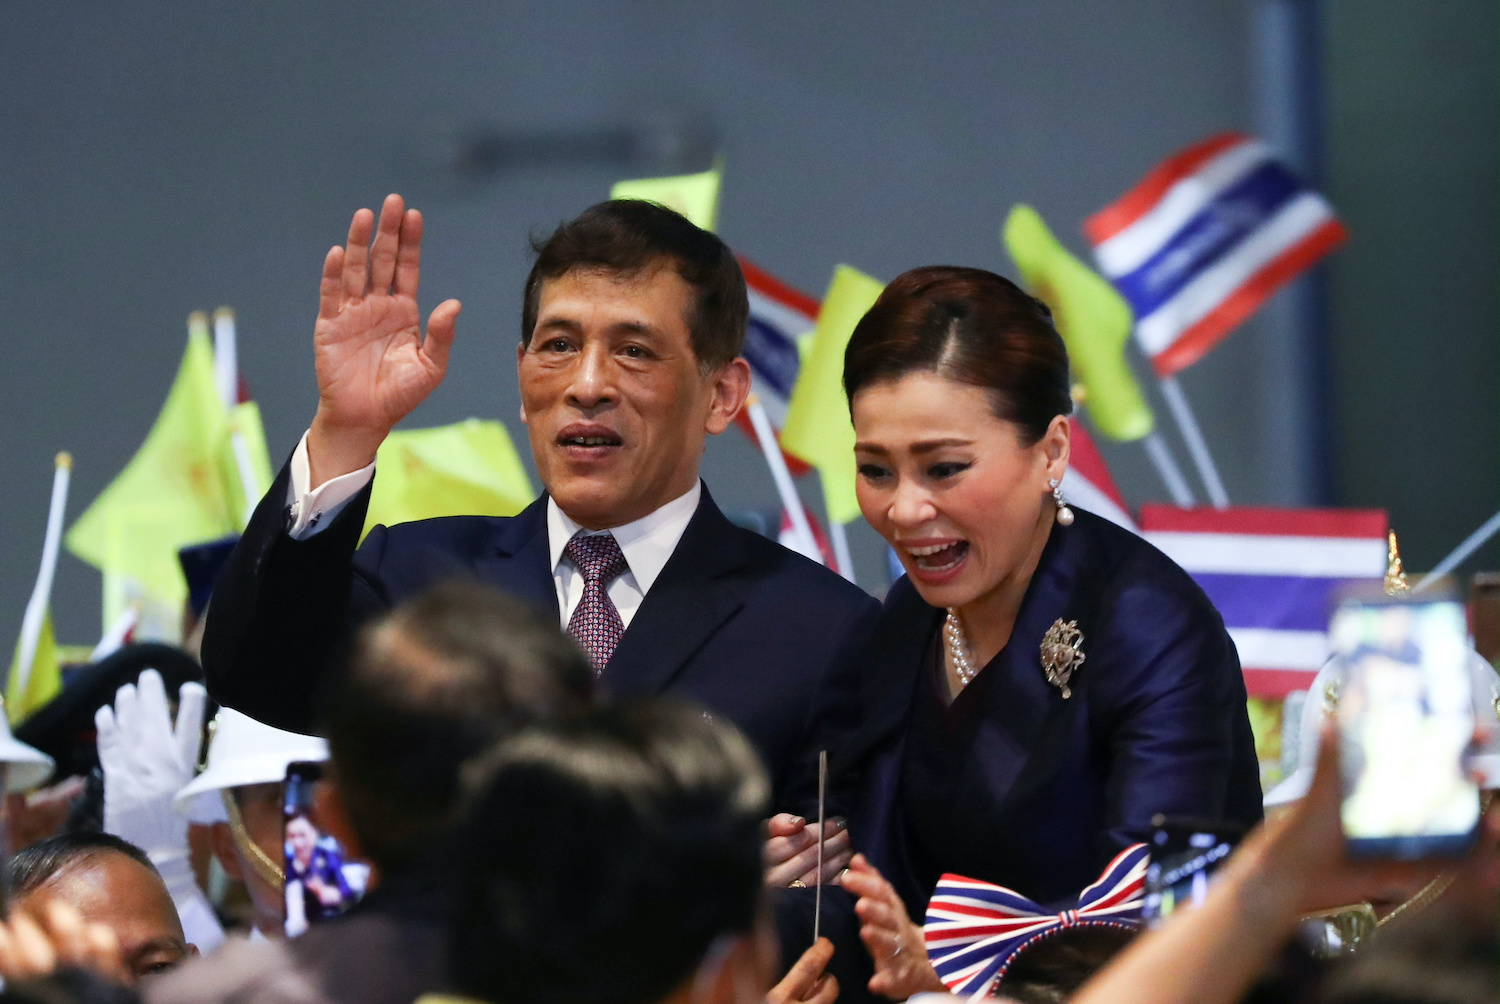 Their Majesties the King and Queen greet supporters at the Lak Song MRT station, to which they travelled by subway after inaugurating the Blue Line extension on Saturday. (Reuters Photo)